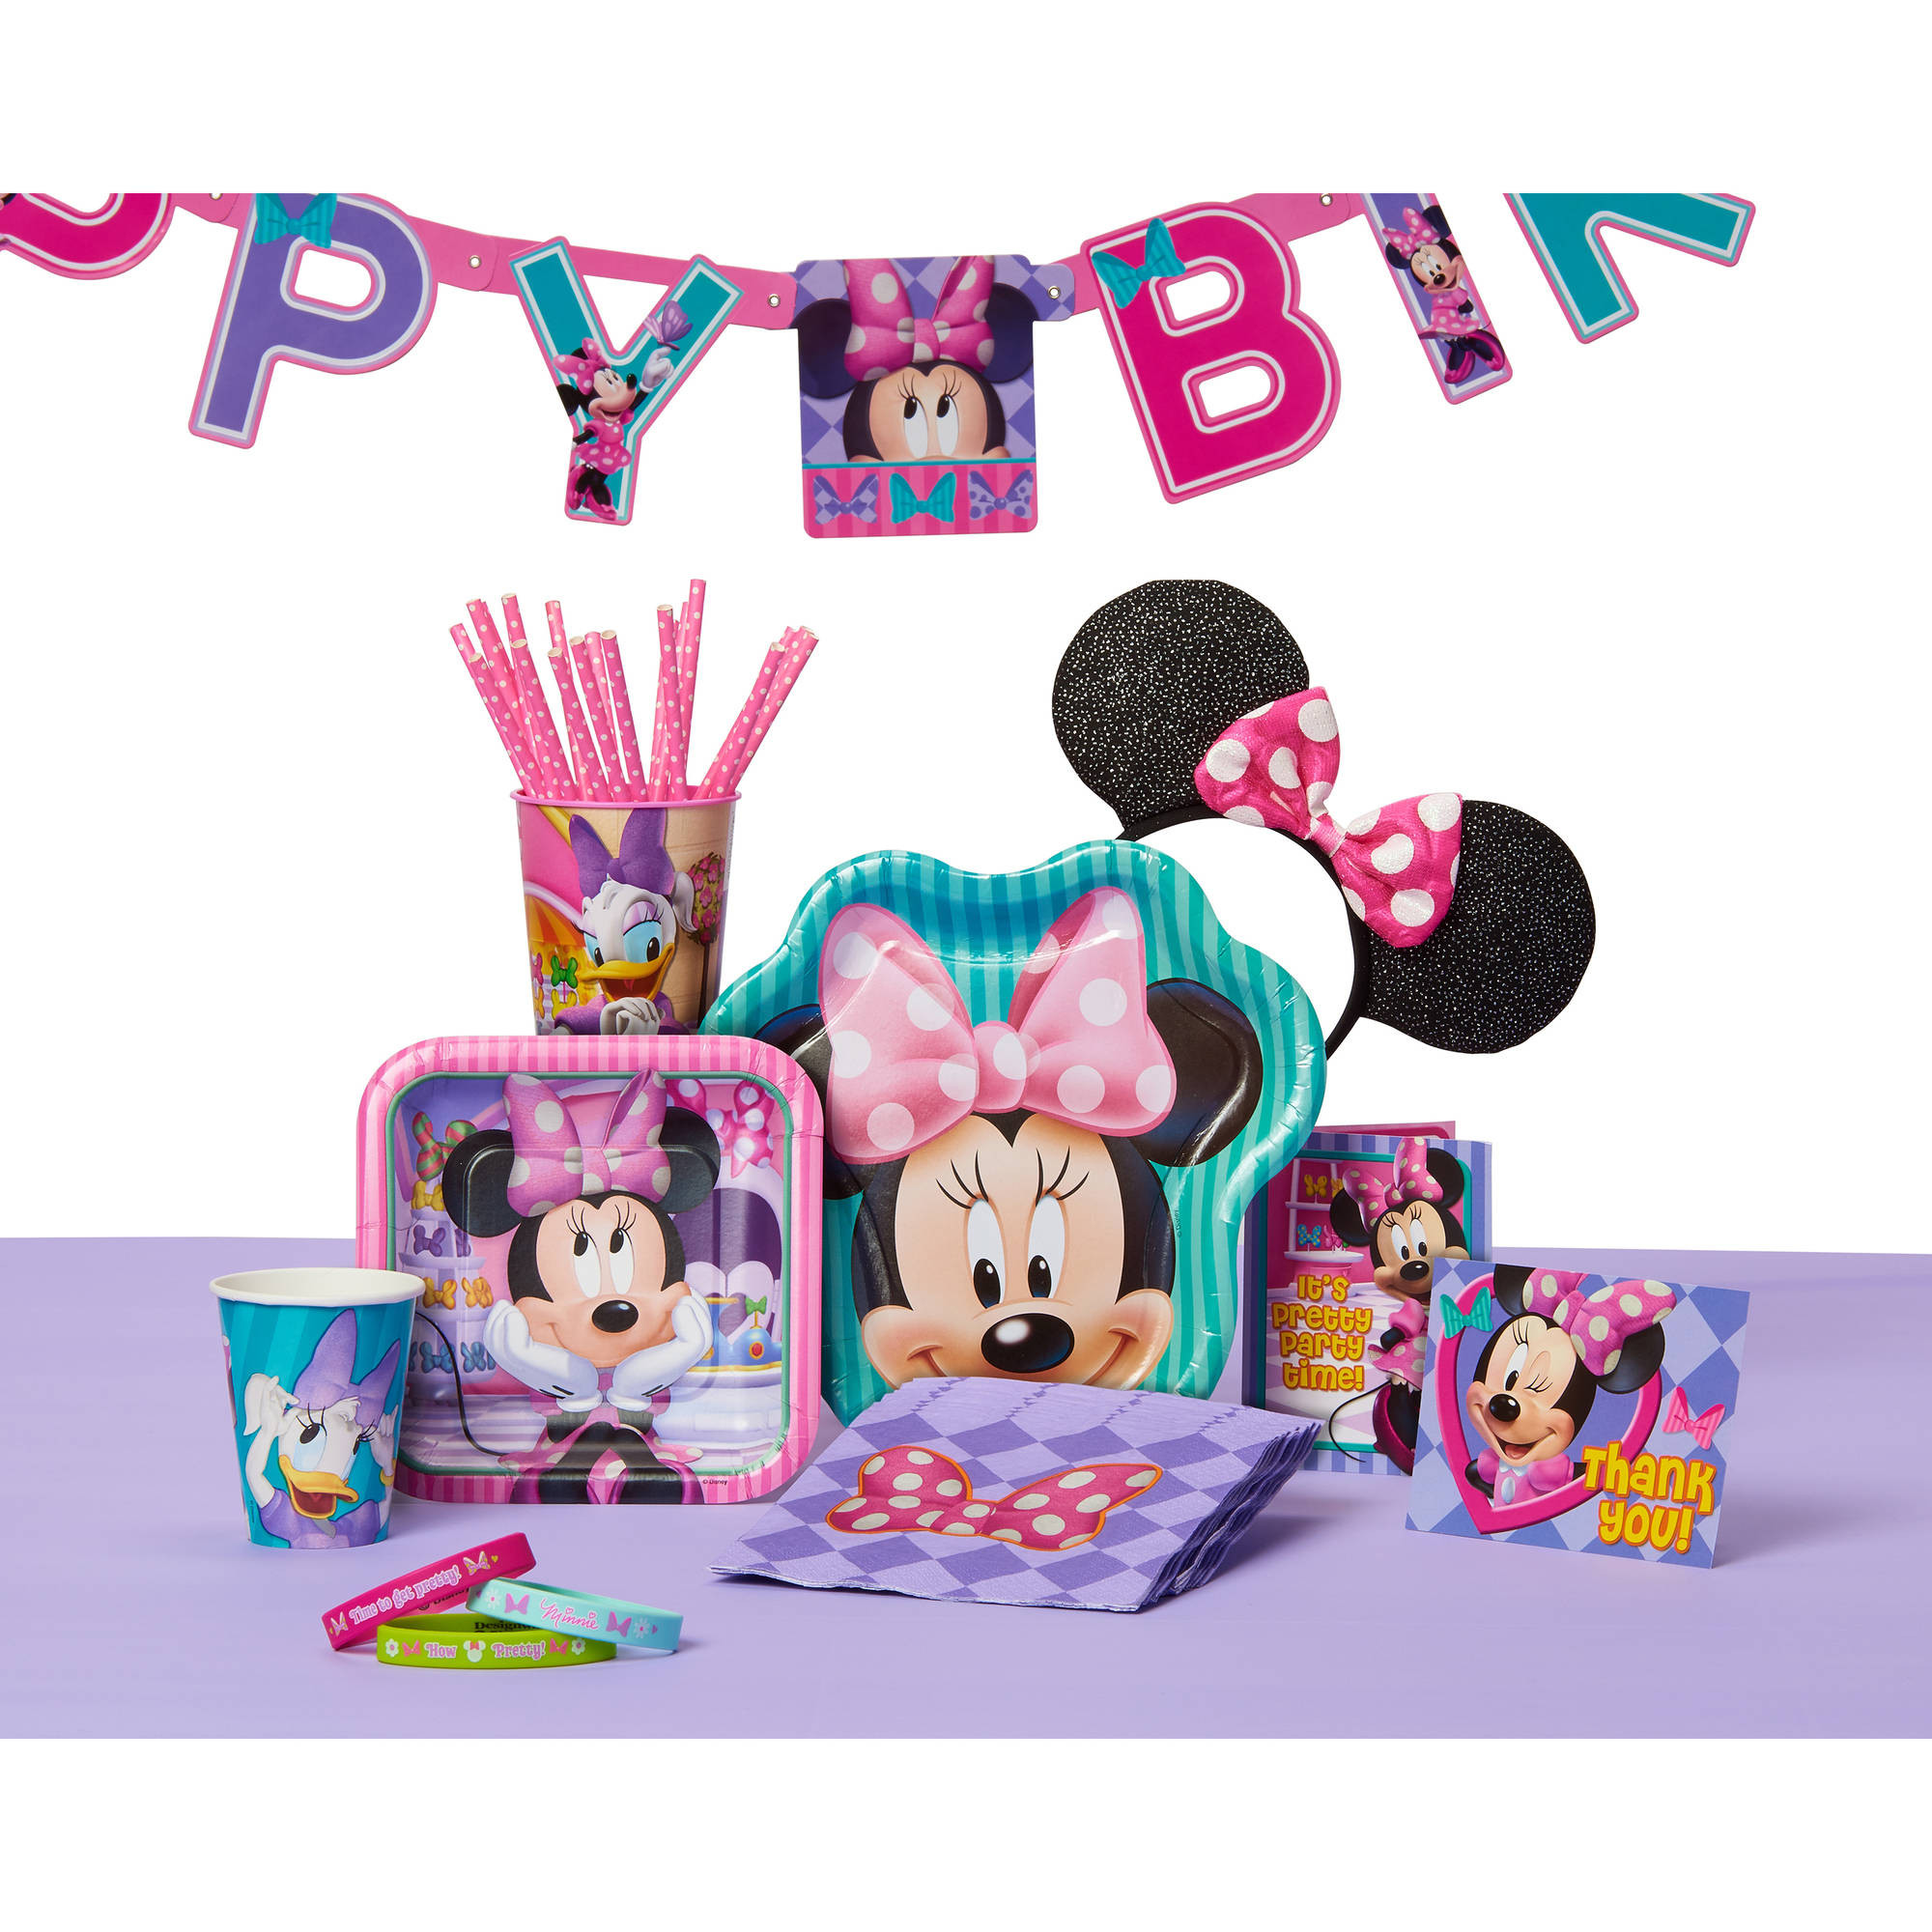 Best ideas about Walmart Birthday Decorations . Save or Pin Minnie Mouse Party Supplies Walmart Now.